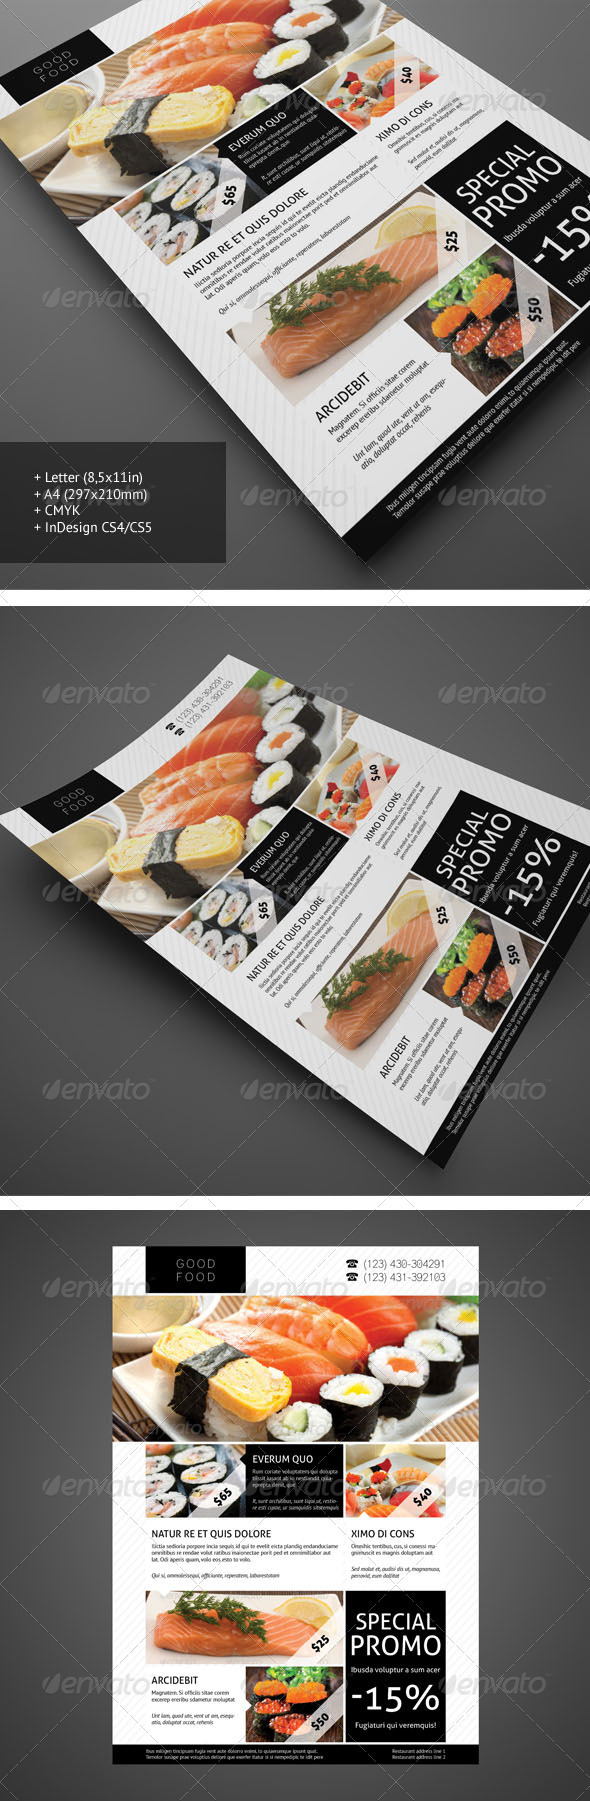 Restaurant Flyer 1 - Restaurant Flyers